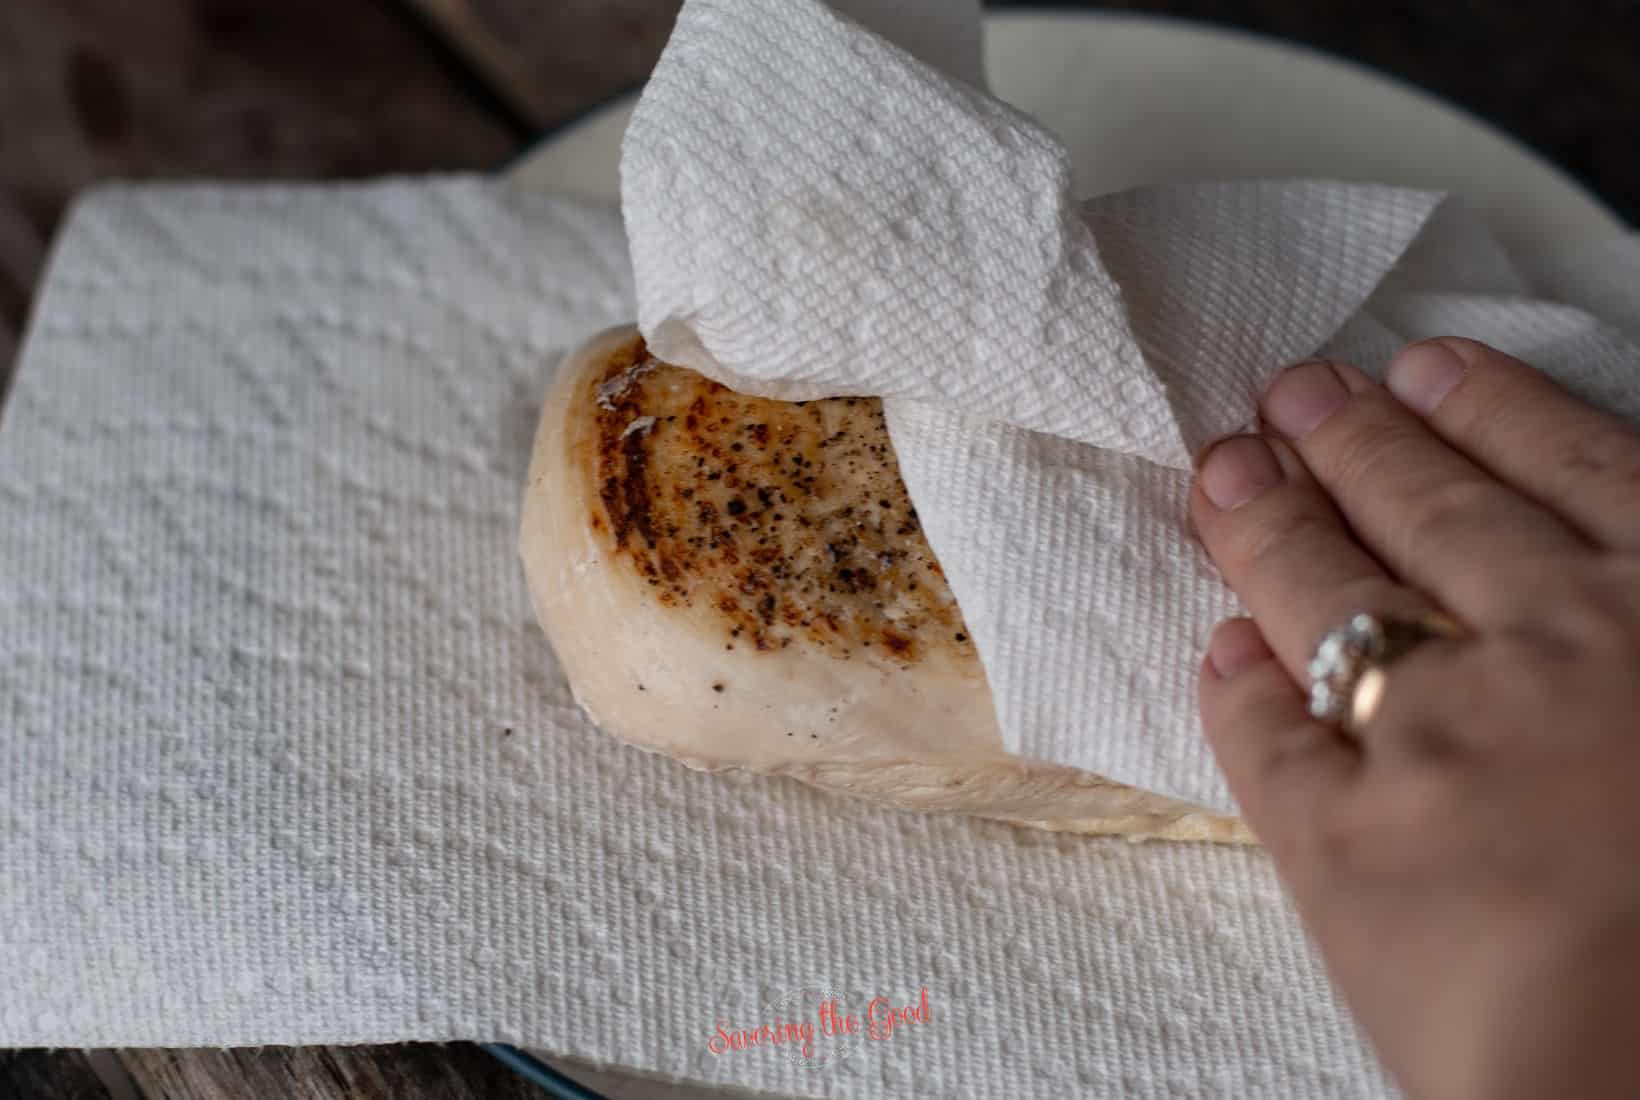 patting a sous vide chicken breast dry with a paper towel after cooking in preparation of searing